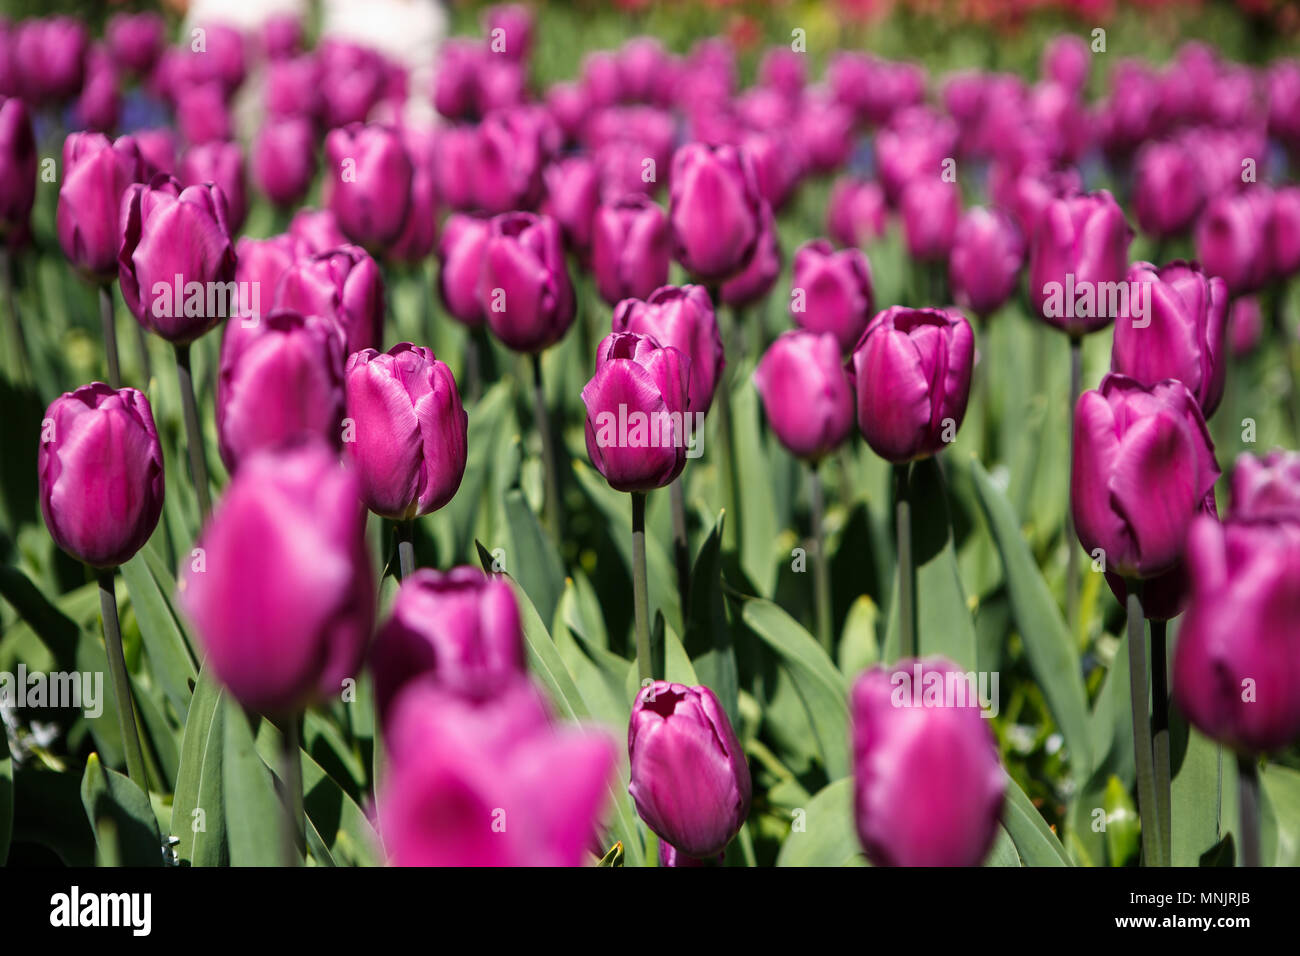 Beautiful colorful purple tulips flowers bloom in spring garden beautiful colorful purple tulips flowers bloom in spring gardencorative wallpaper with violet tulip flower blossom in springtimeauty of nature p izmirmasajfo